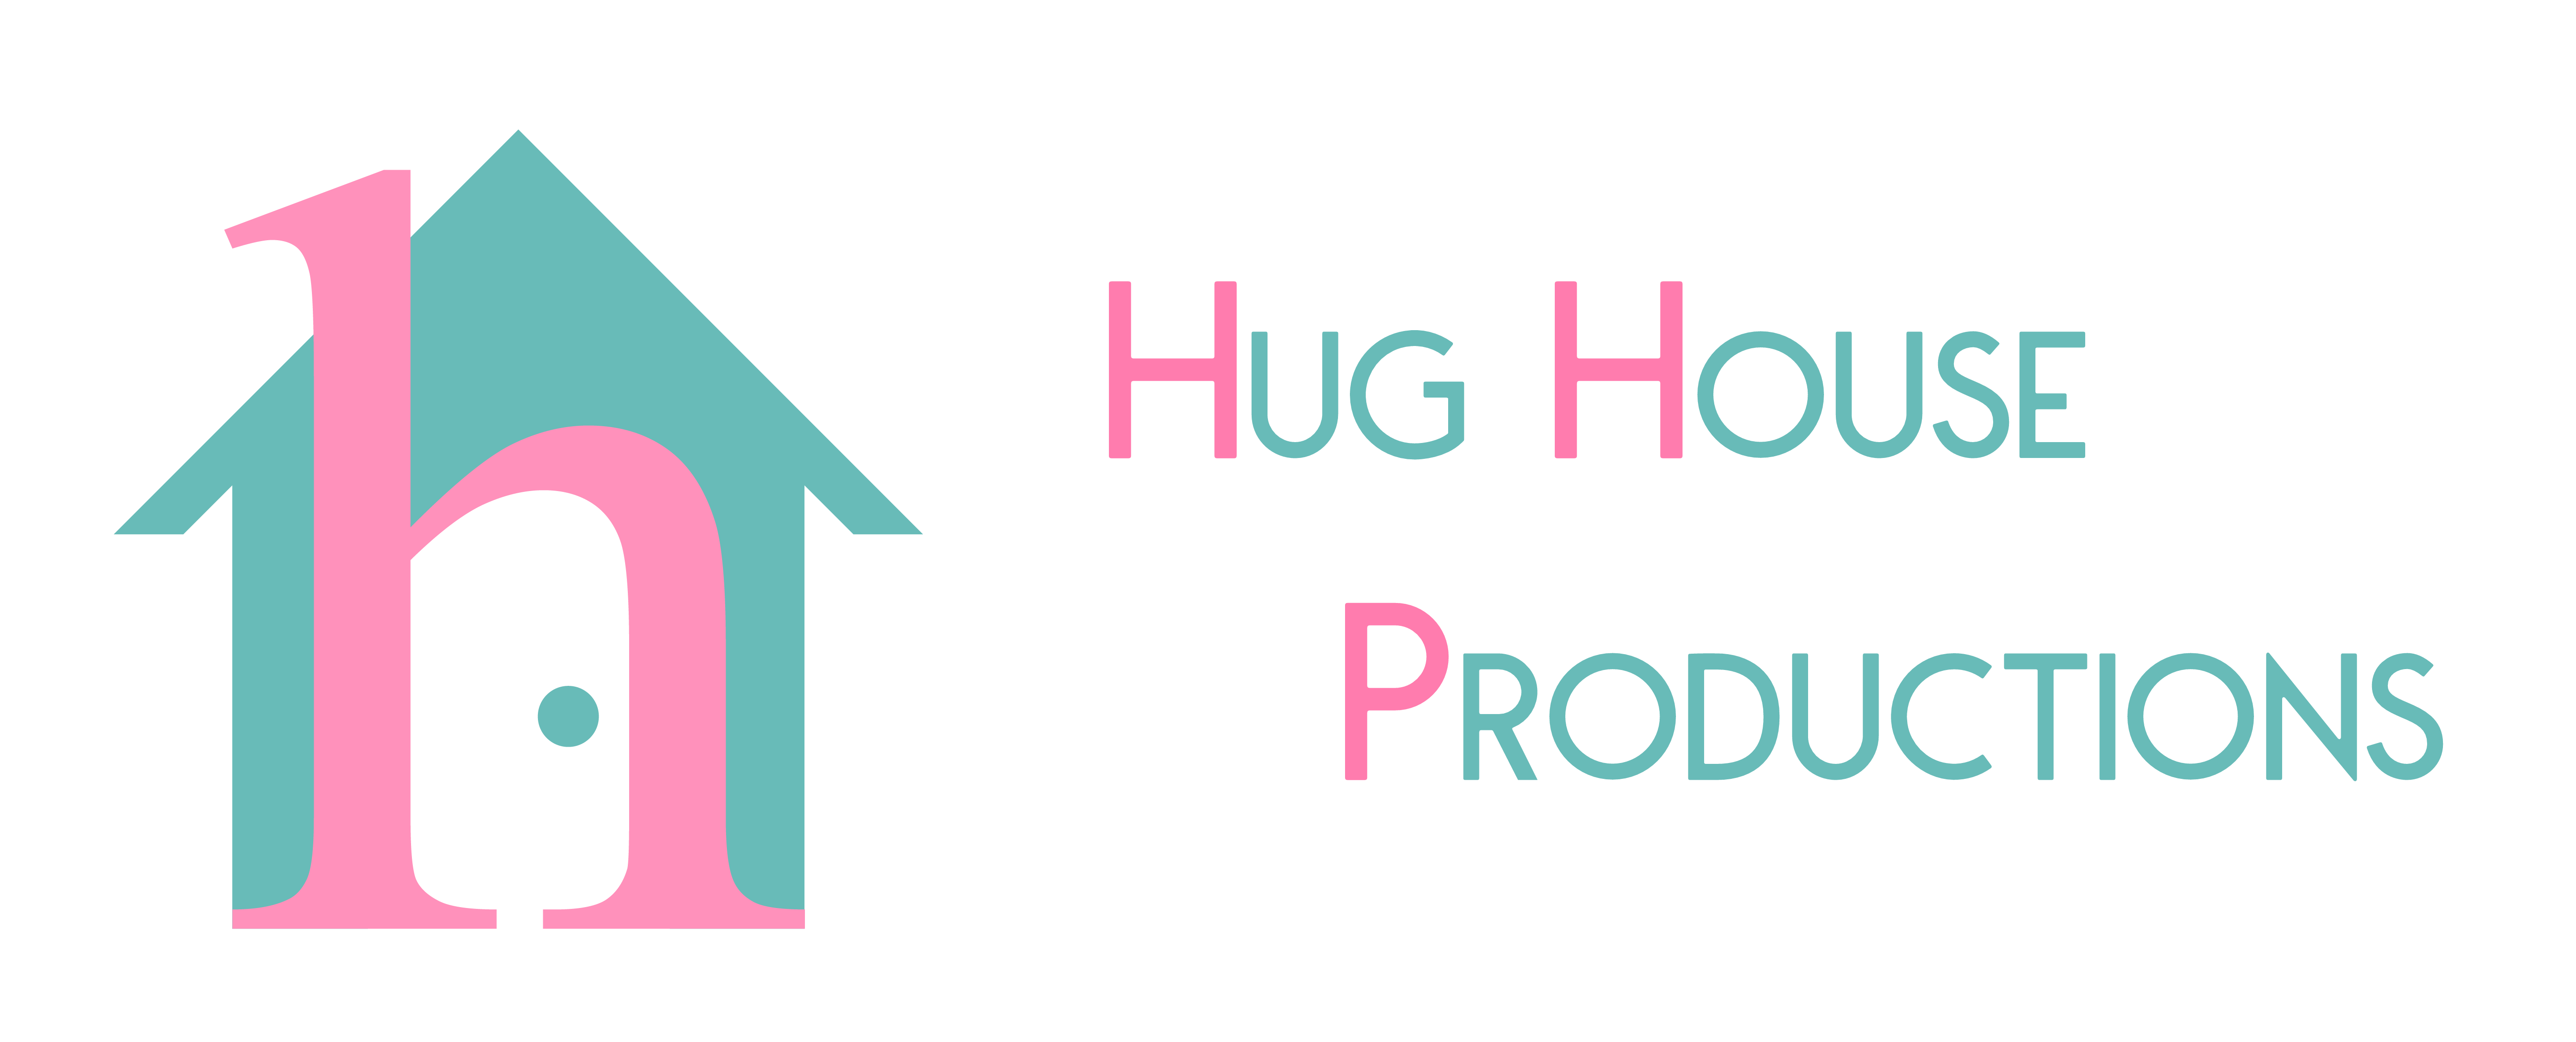 Hug House Productions